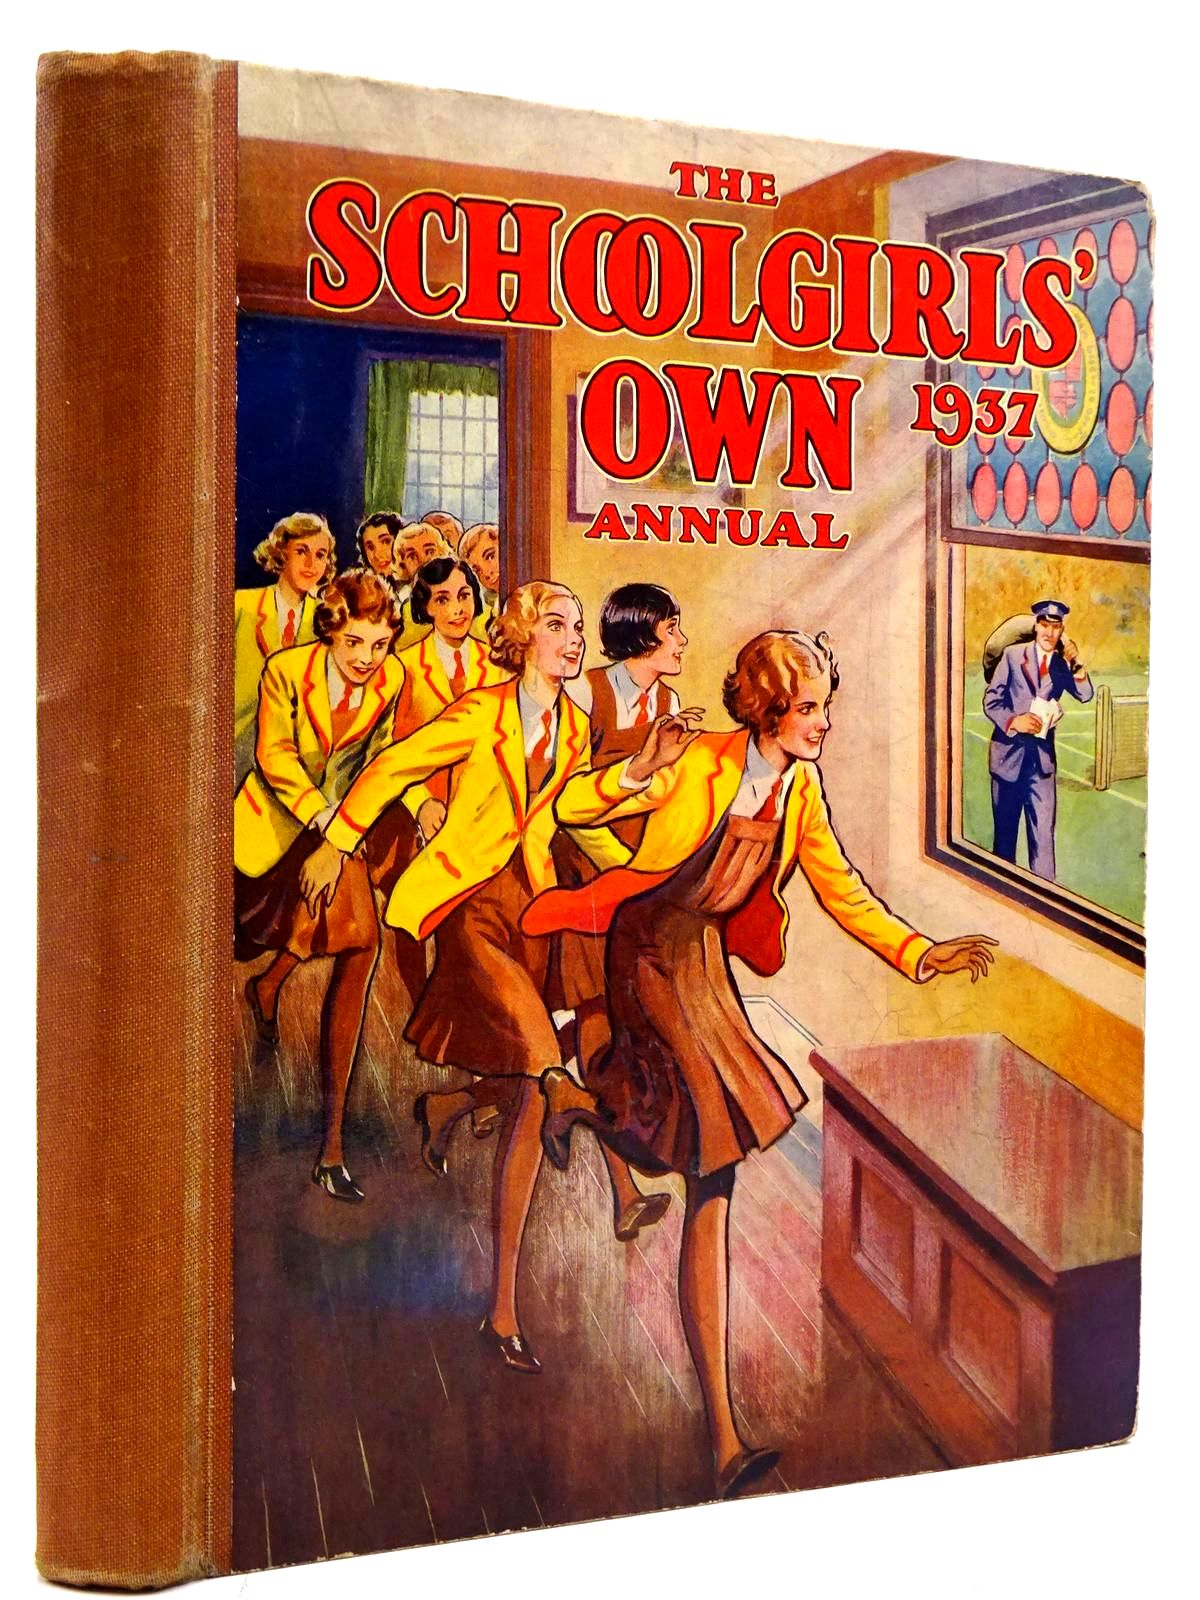 Photo of THE SCHOOLGIRLS' OWN ANNUAL 1937 published by The Fleetway House (STOCK CODE: 2131157)  for sale by Stella & Rose's Books